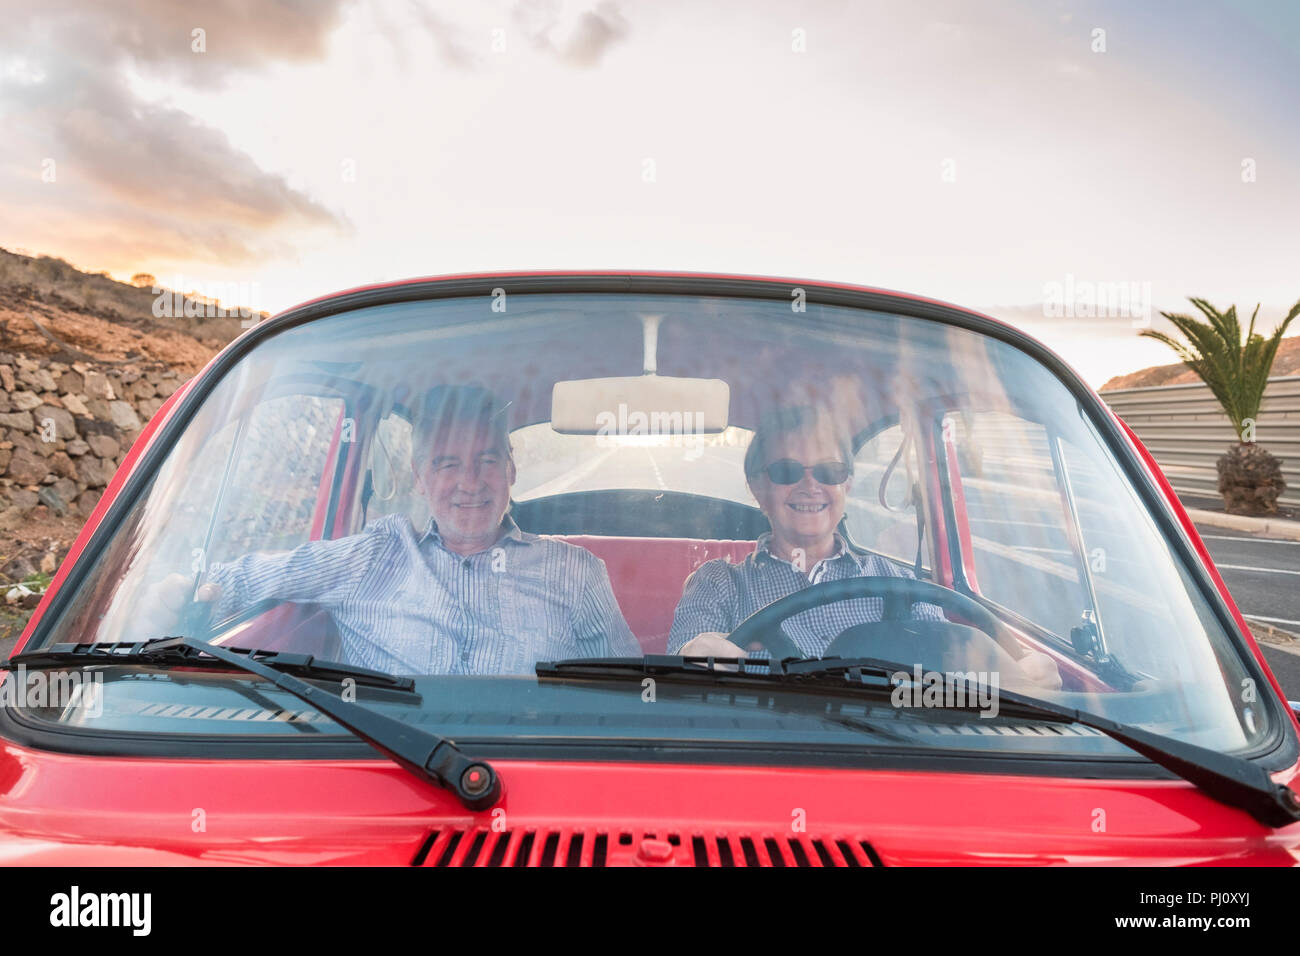 nice adult couple drive and love inside a red old vintage car parked on the road. smiles and have fun traveling together. happiness and lifestyle for  - Stock Image